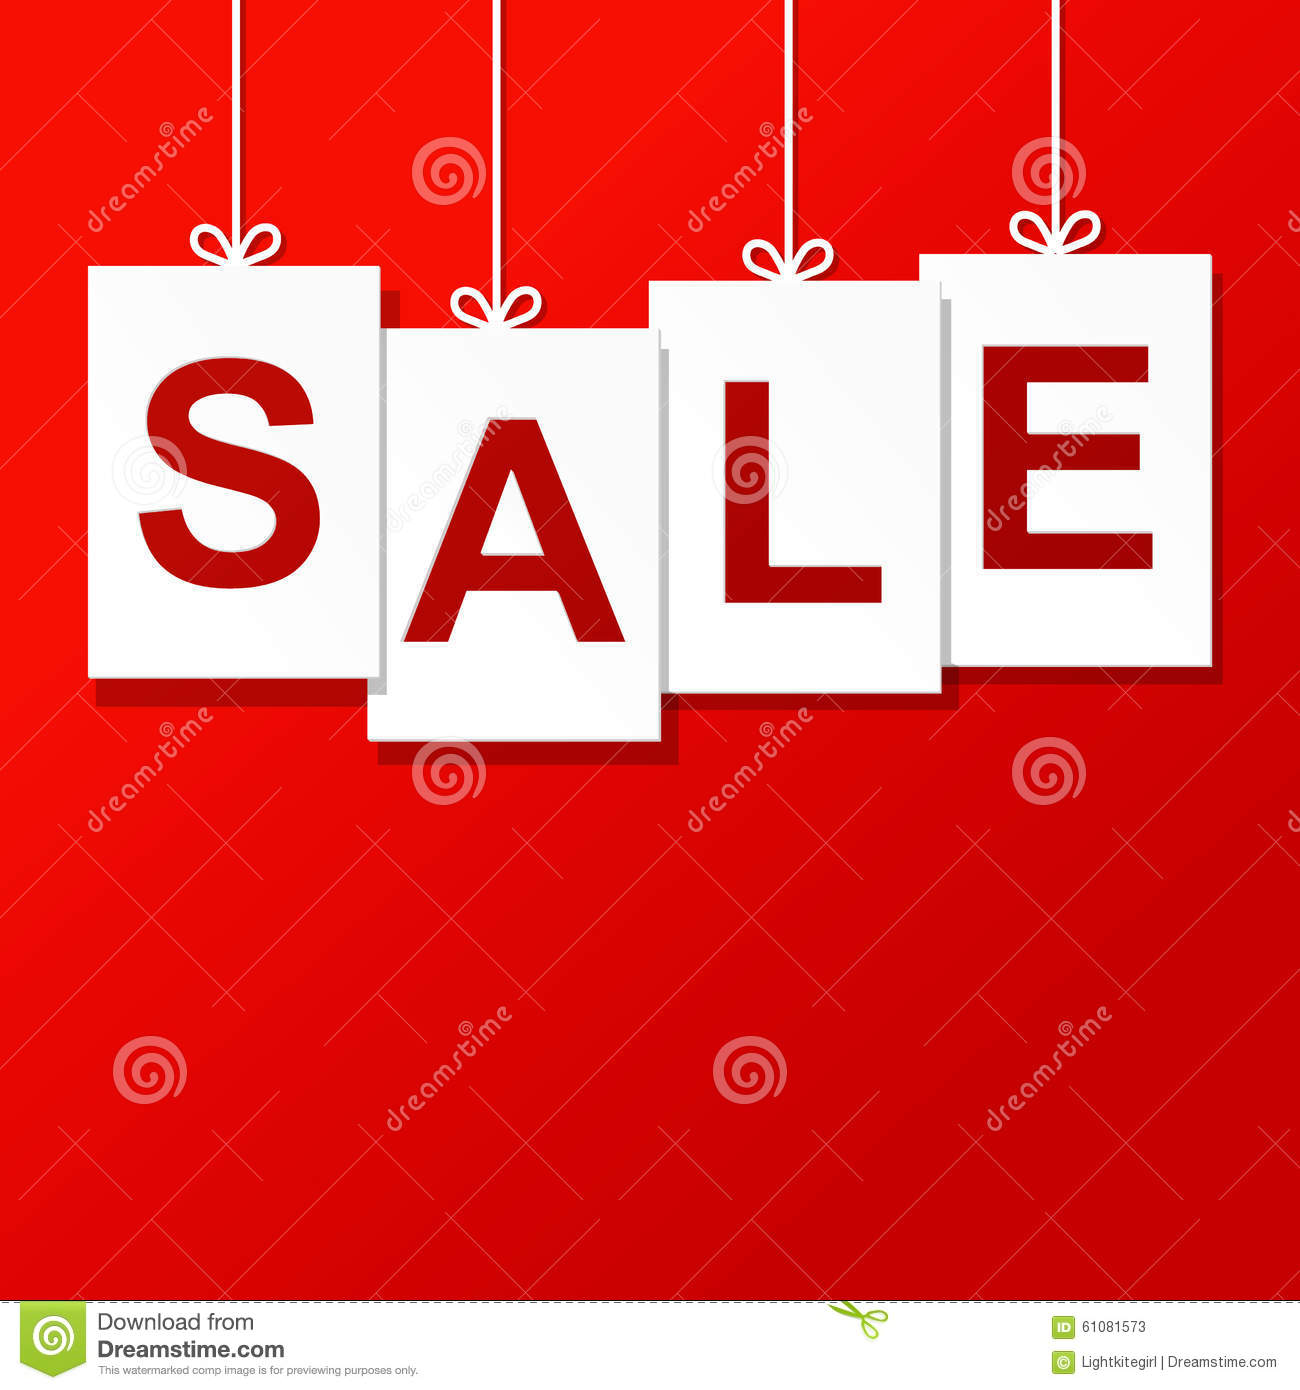 Term paper for sale red